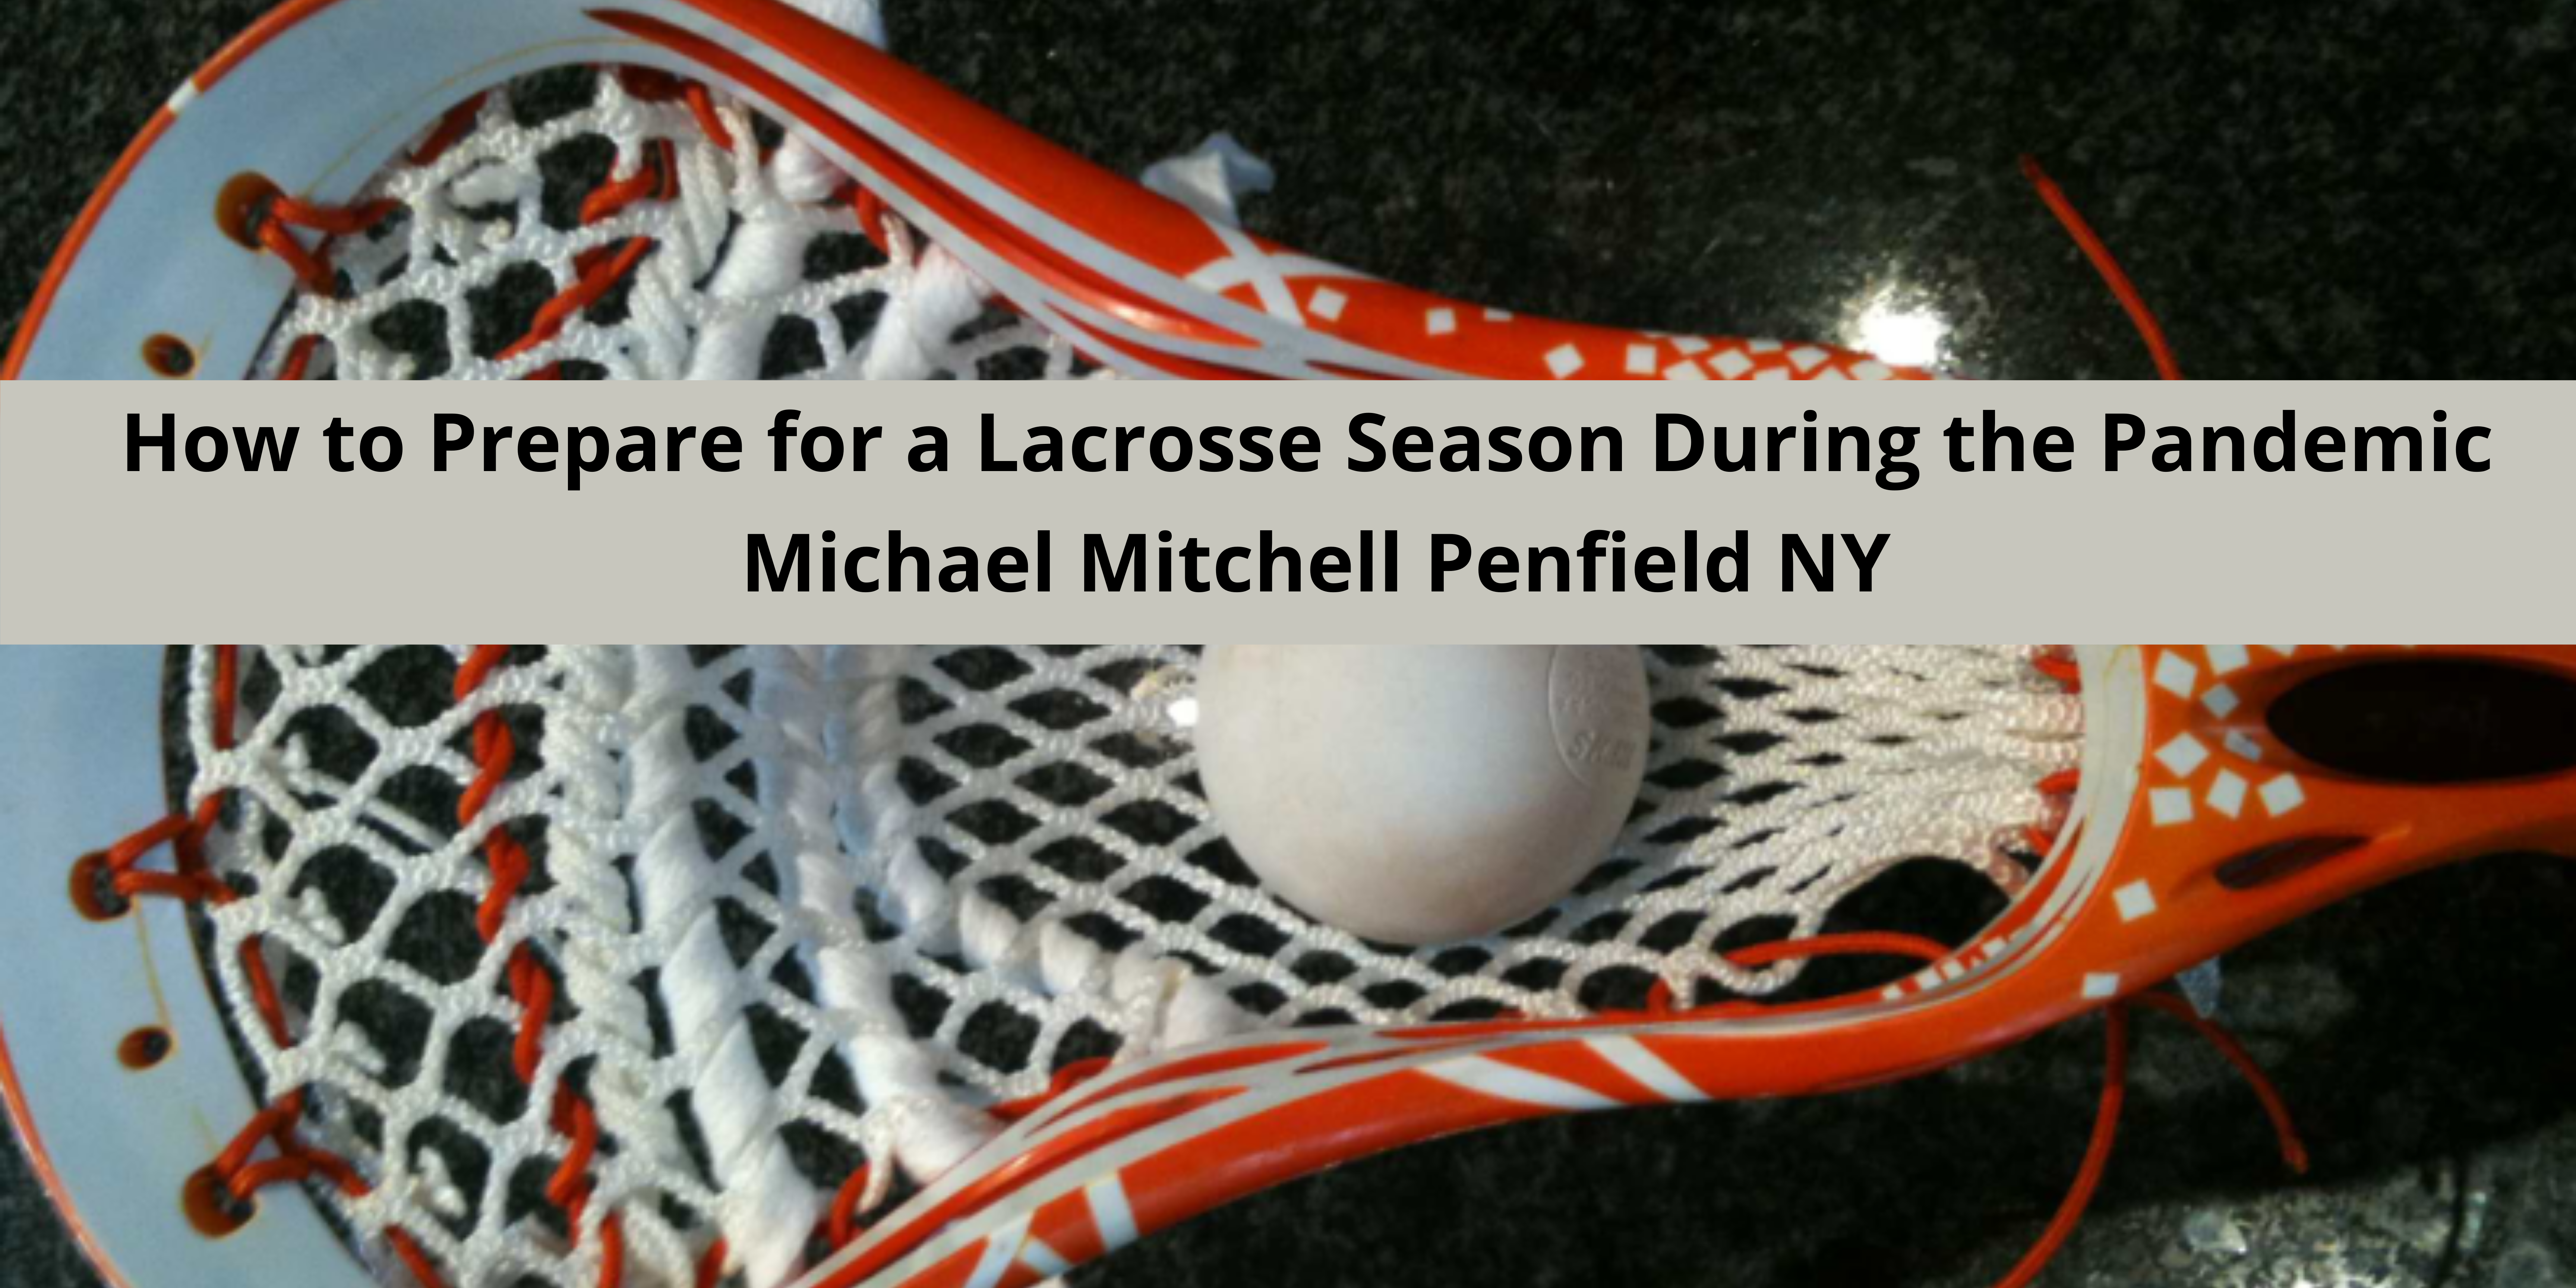 How to Prepare for a Lacrosse Season During the Pandemic